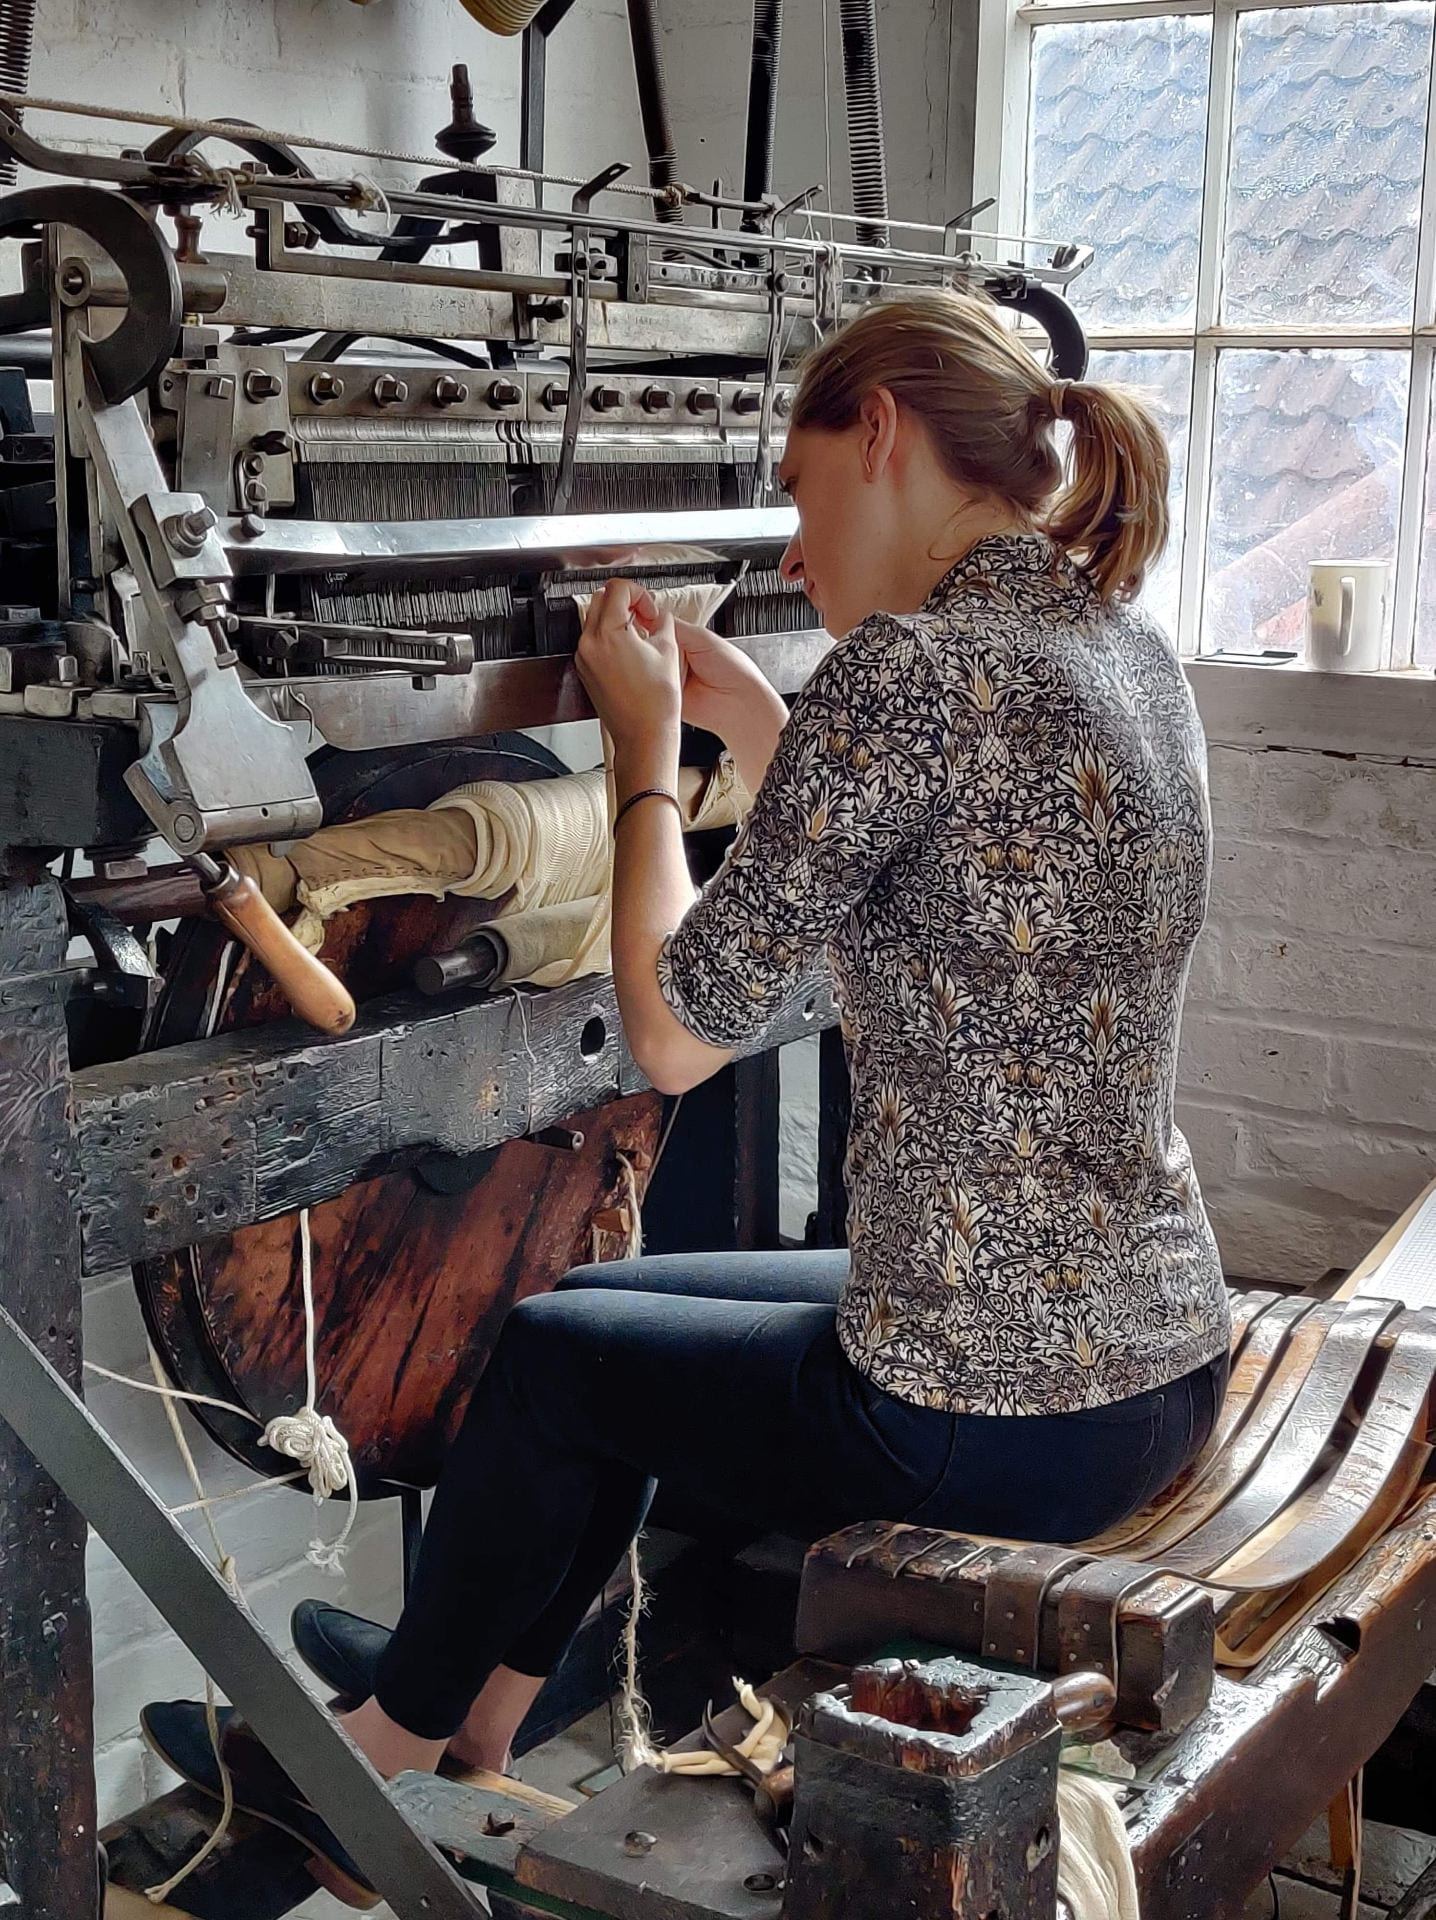 The author sits in front of a knitting machine with a piece of knitted fabric hanging from it, using a tiny hook to make a pattern.